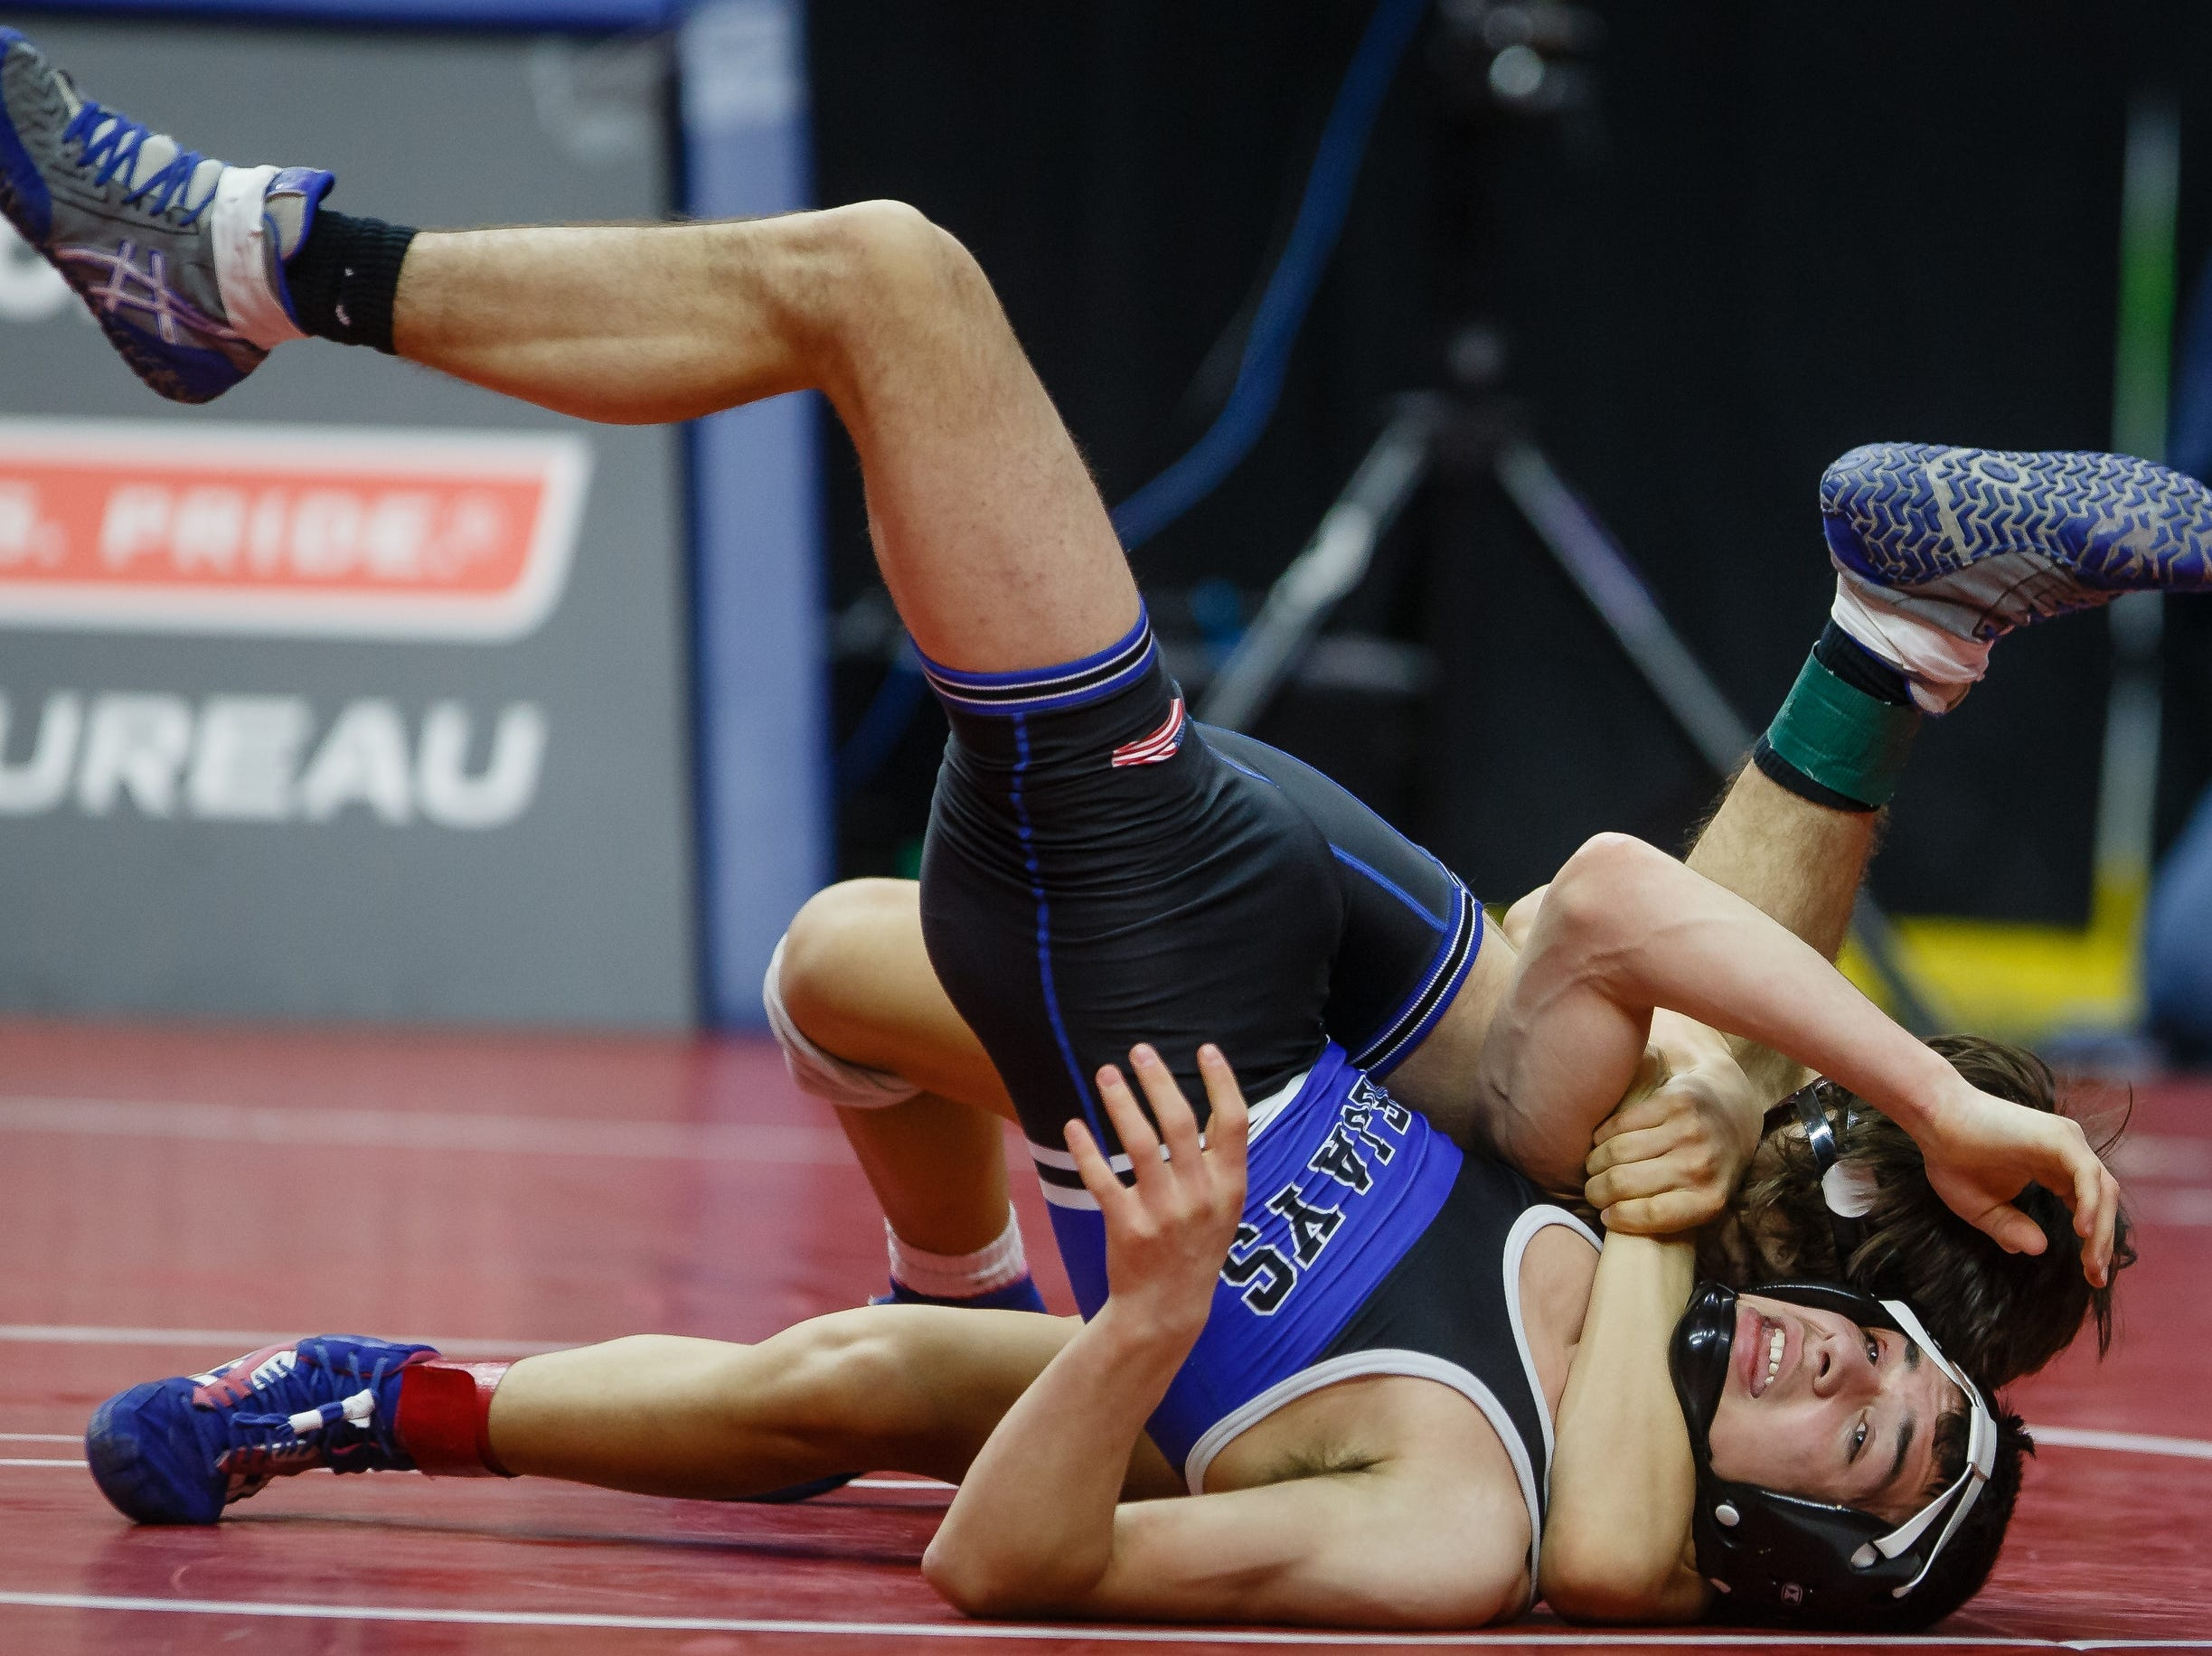 Isaiah Weber of Independence wrestles Colby Lillegard of Bondurant-Farrar during their class 2A 113 pound state championship semi-final match on Friday, Feb. 15, 2019 in Des Moines. Weber moves onto the finals with a fall.